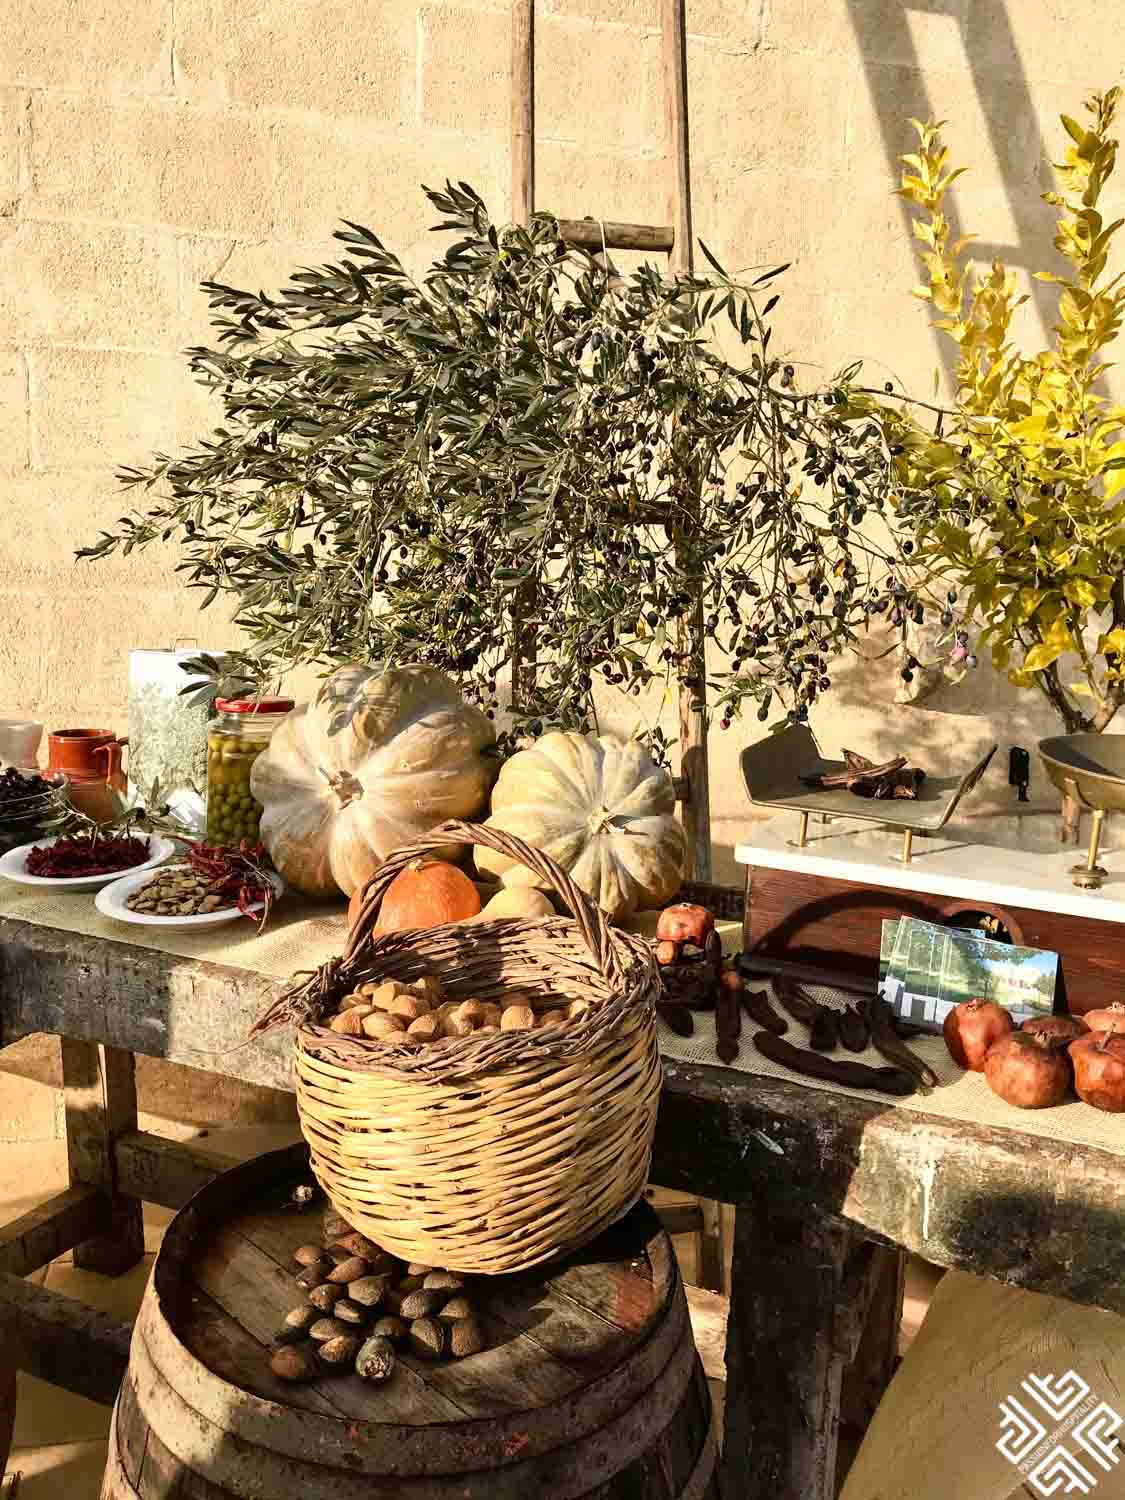 The Ultimate Guide to Puglia's Cuisine